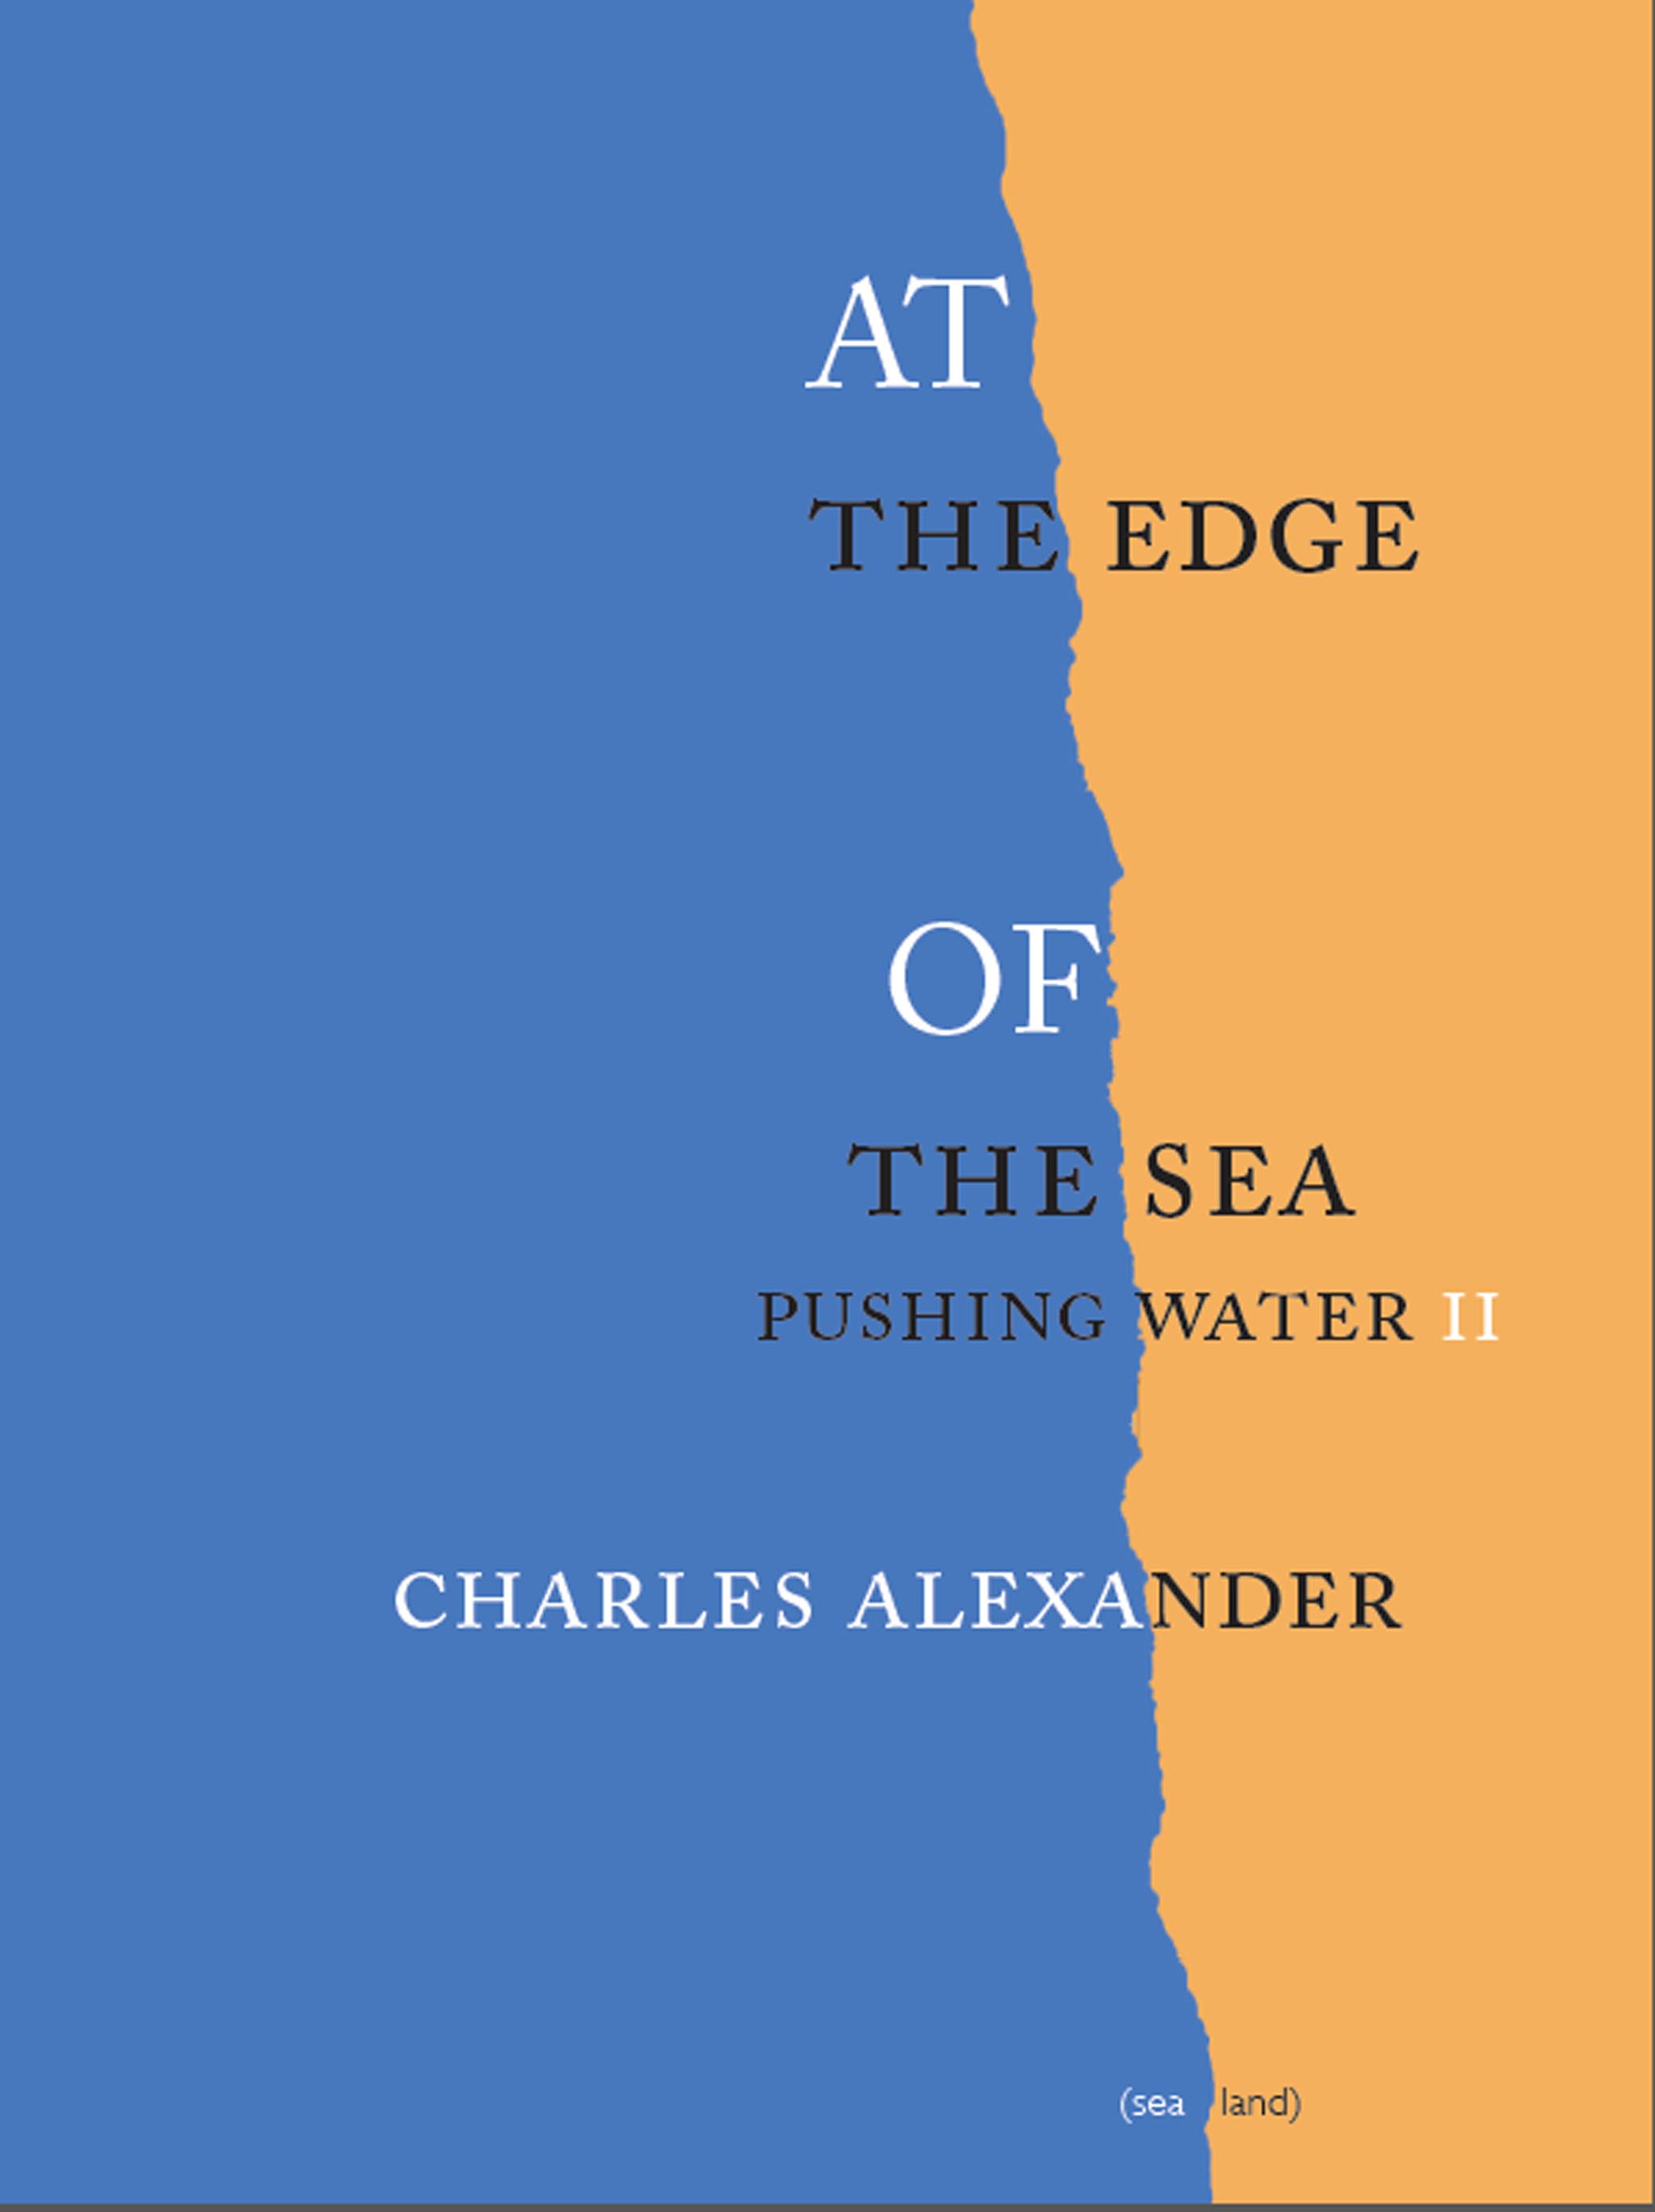 AT the Edge OF the Sea: Pushing Water II